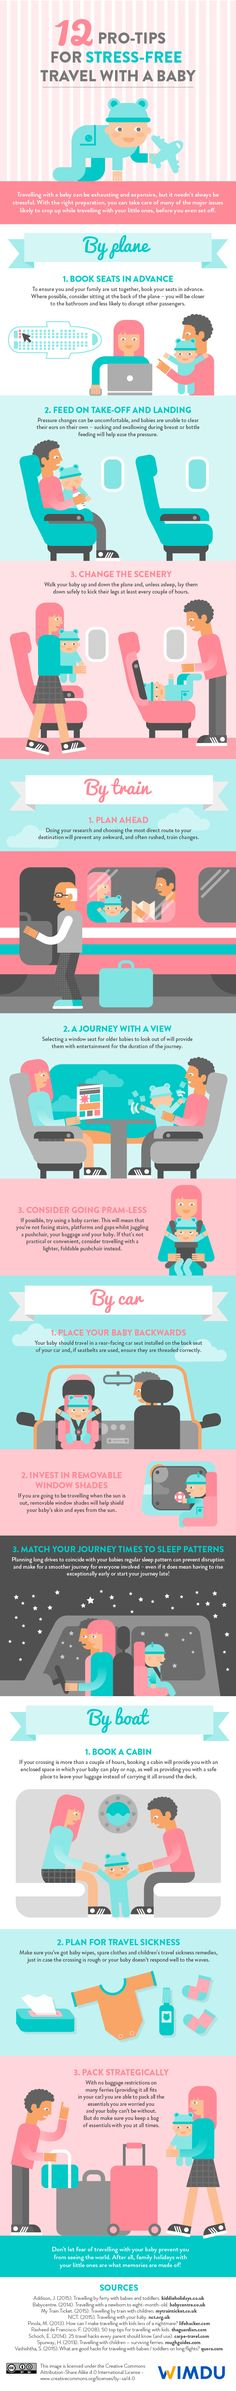 12 pro-tips for stress-free travel with a baby #infographic #Travel